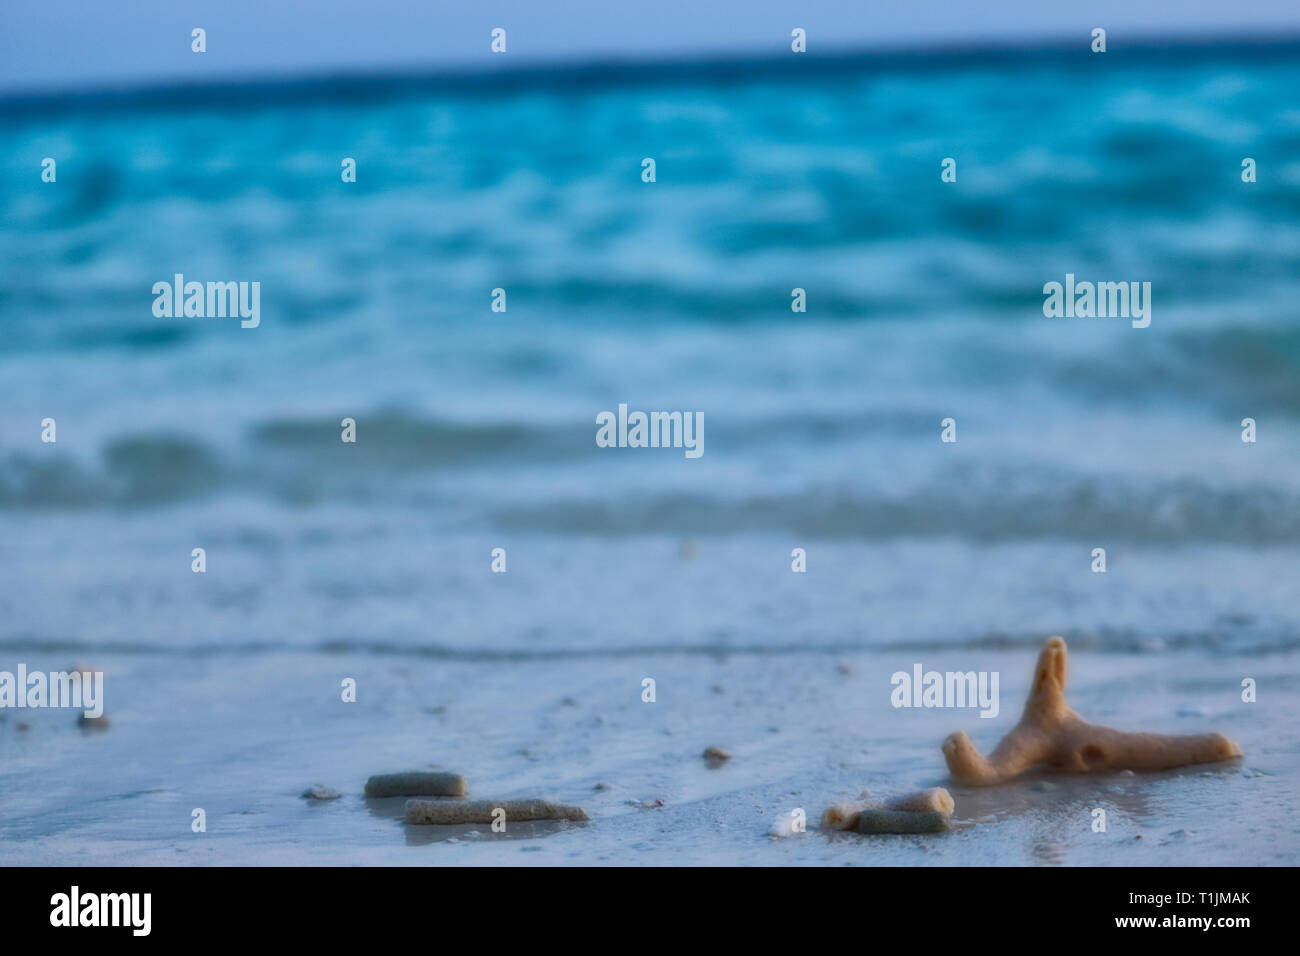 This unique image shows the natural beach of a Maldivian island where coral pieces from the sea have been touched - Stock Image